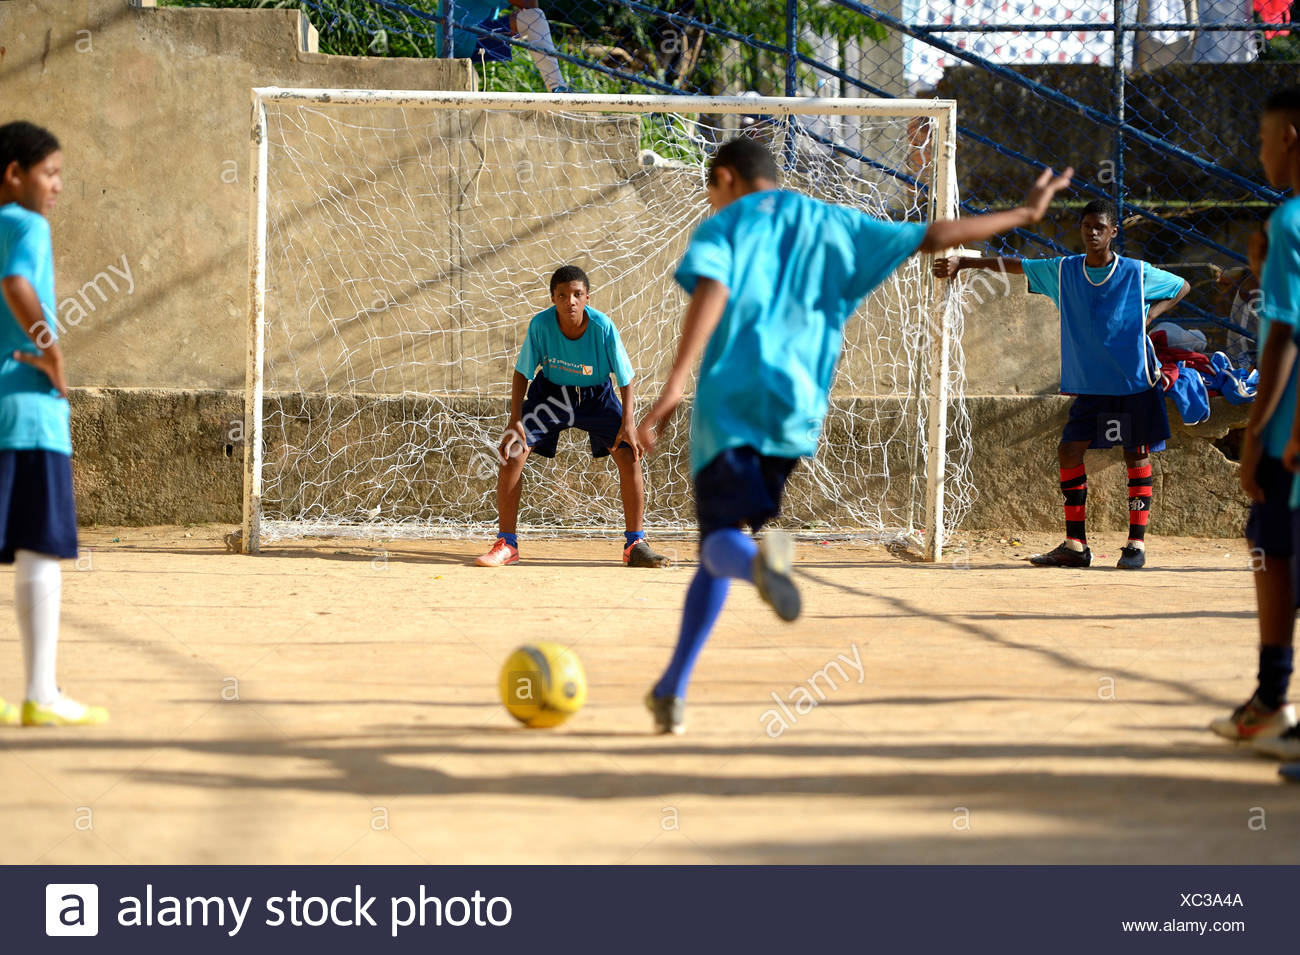 Penalty, soccer tournament on the football ground of the Guararape favela, Rio de Janeiro, Brazil - Stock Image